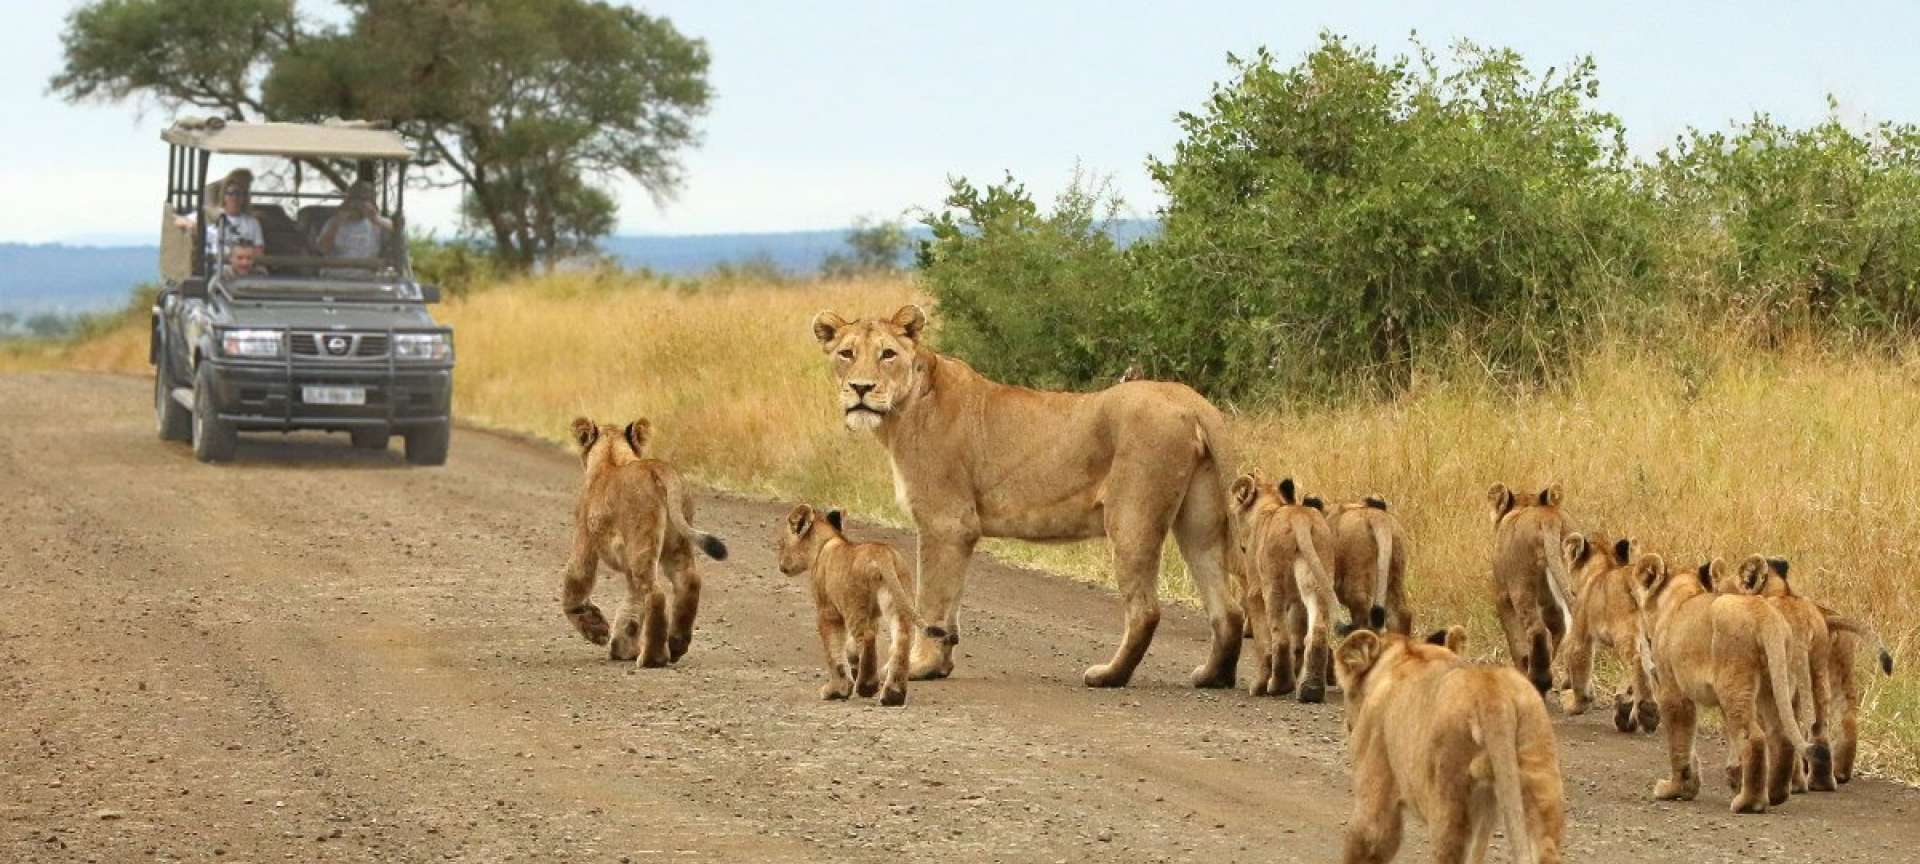 Wildlife spotting in August is a great time to visit the Kruger National Park